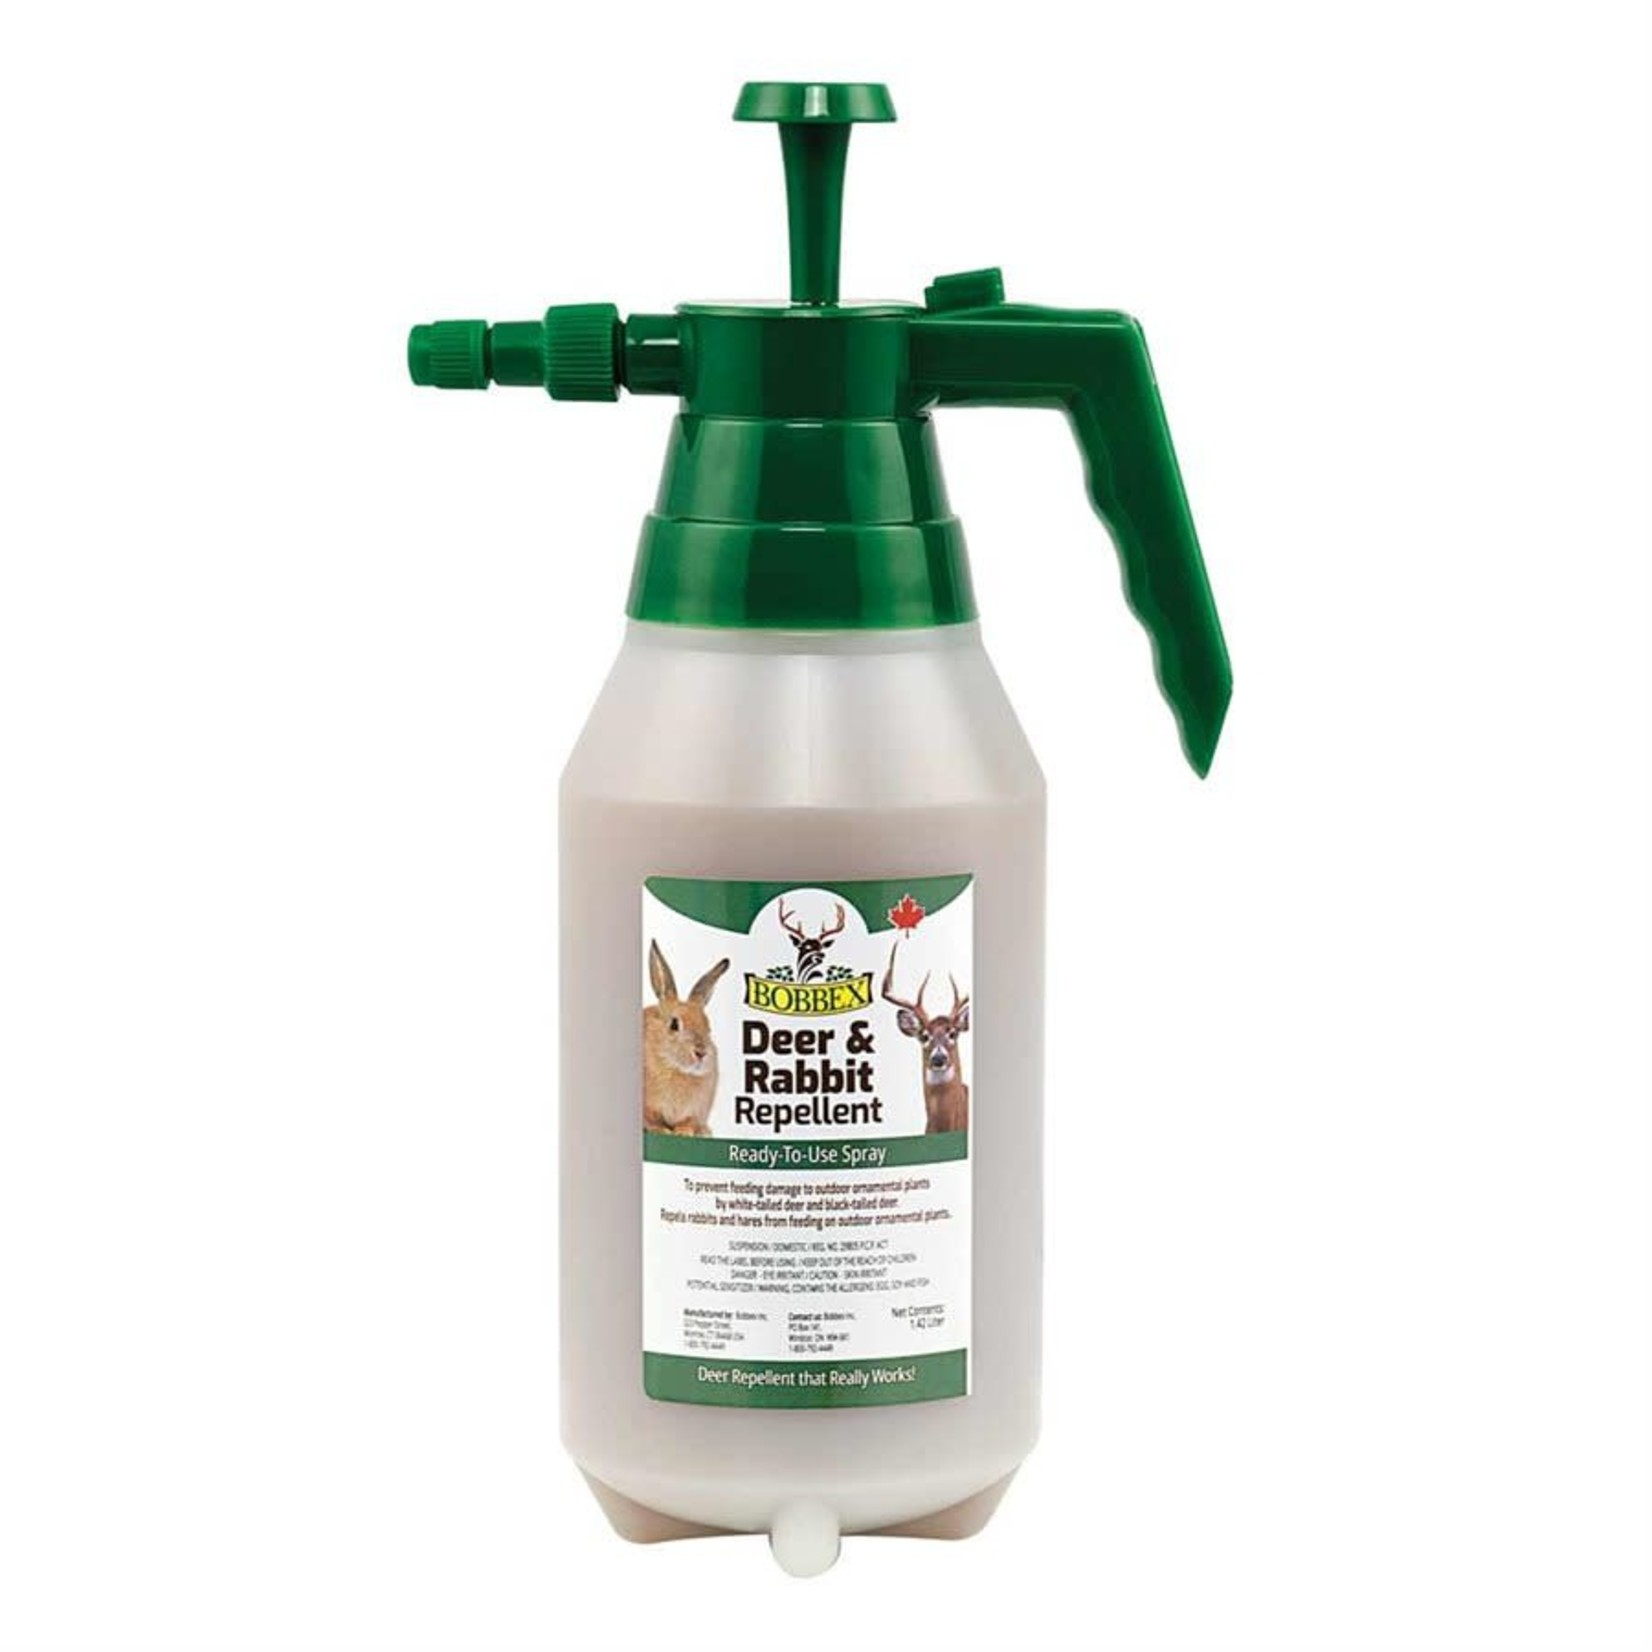 Bobbex (deer/rabbit) Repel 1.42L Spray